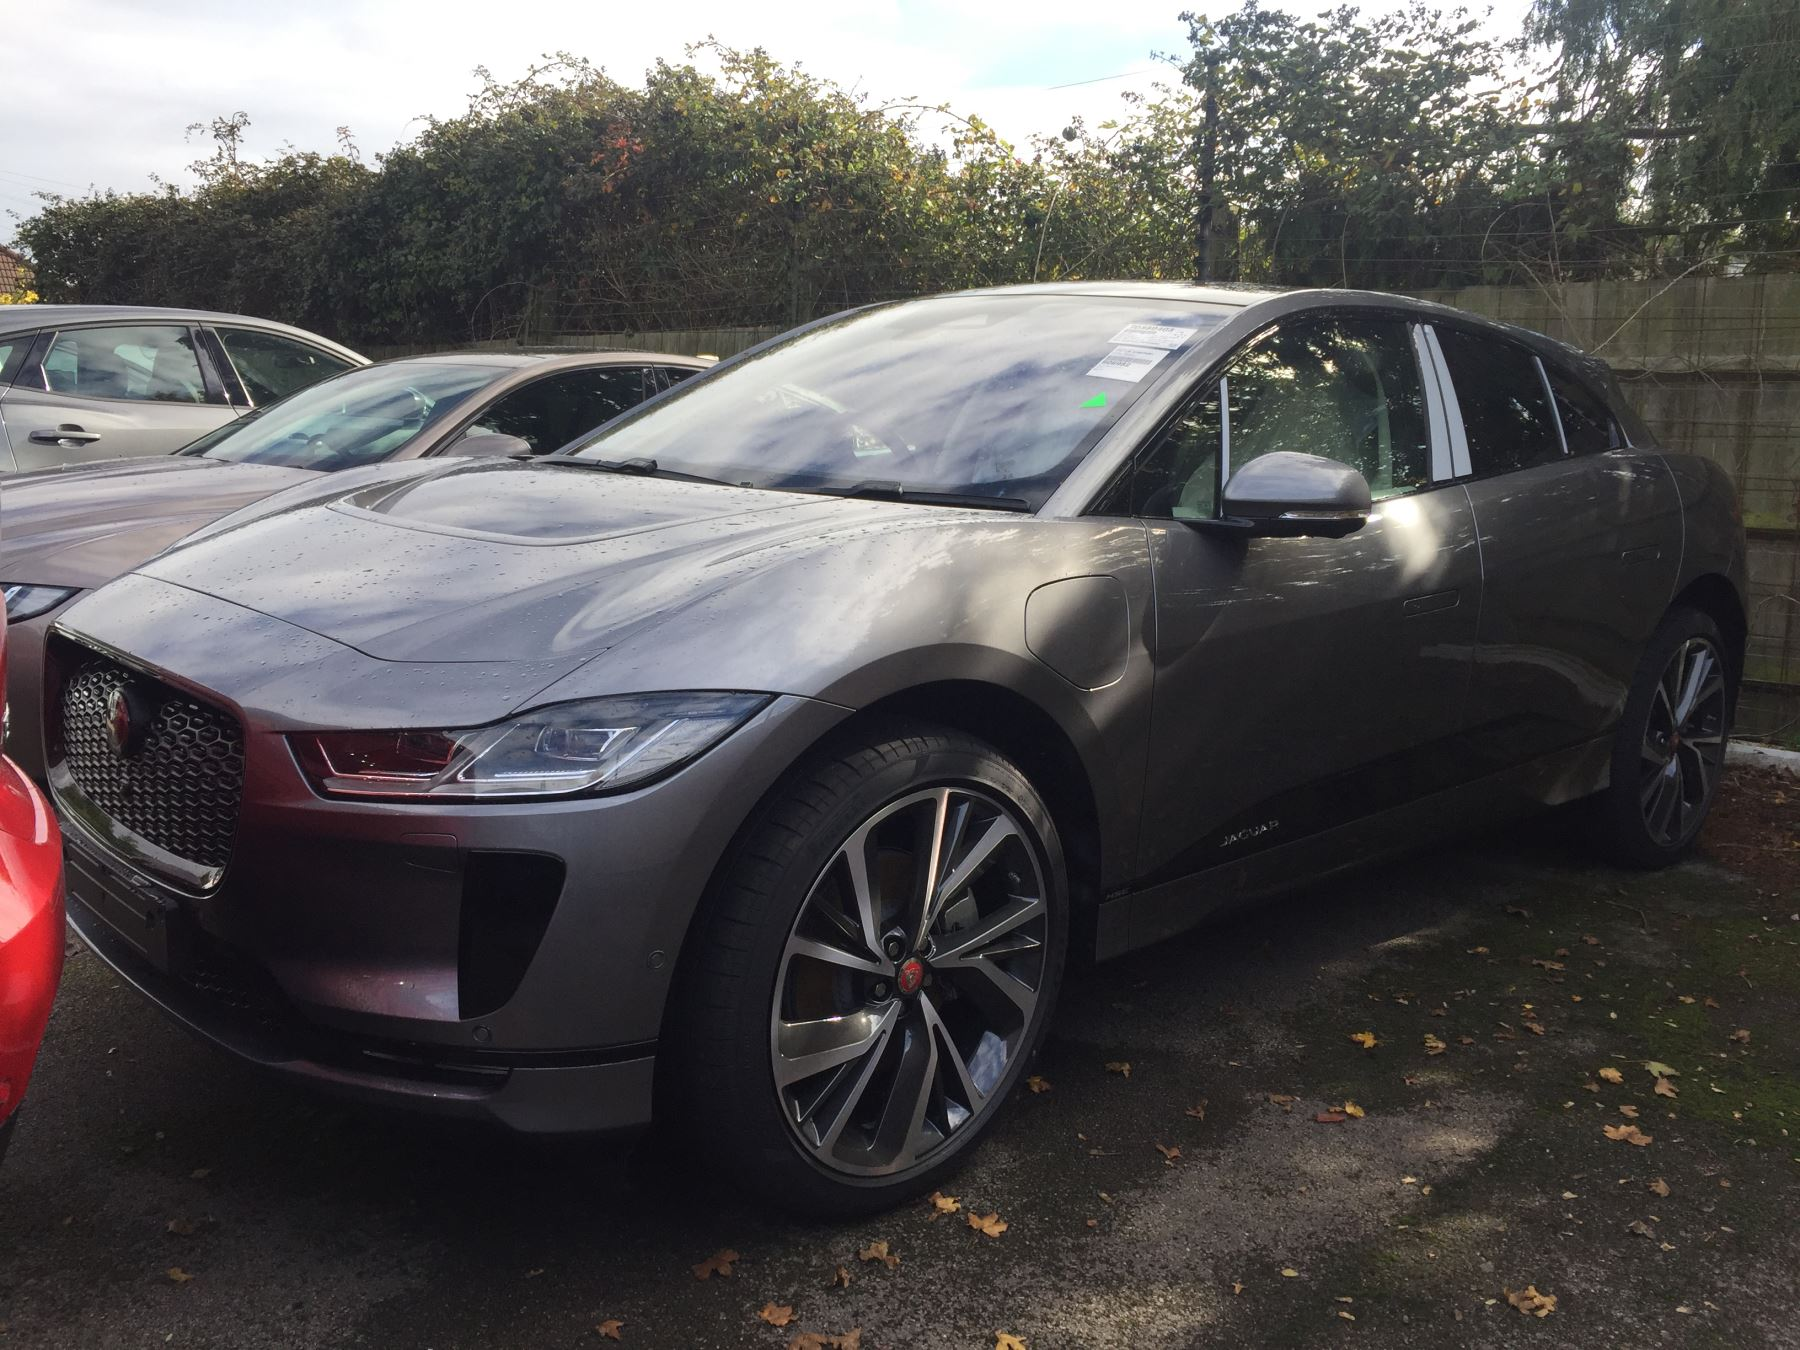 Jaguar I-PACE 294kW EV400 HSE 90kWh 11kW Charger image 1